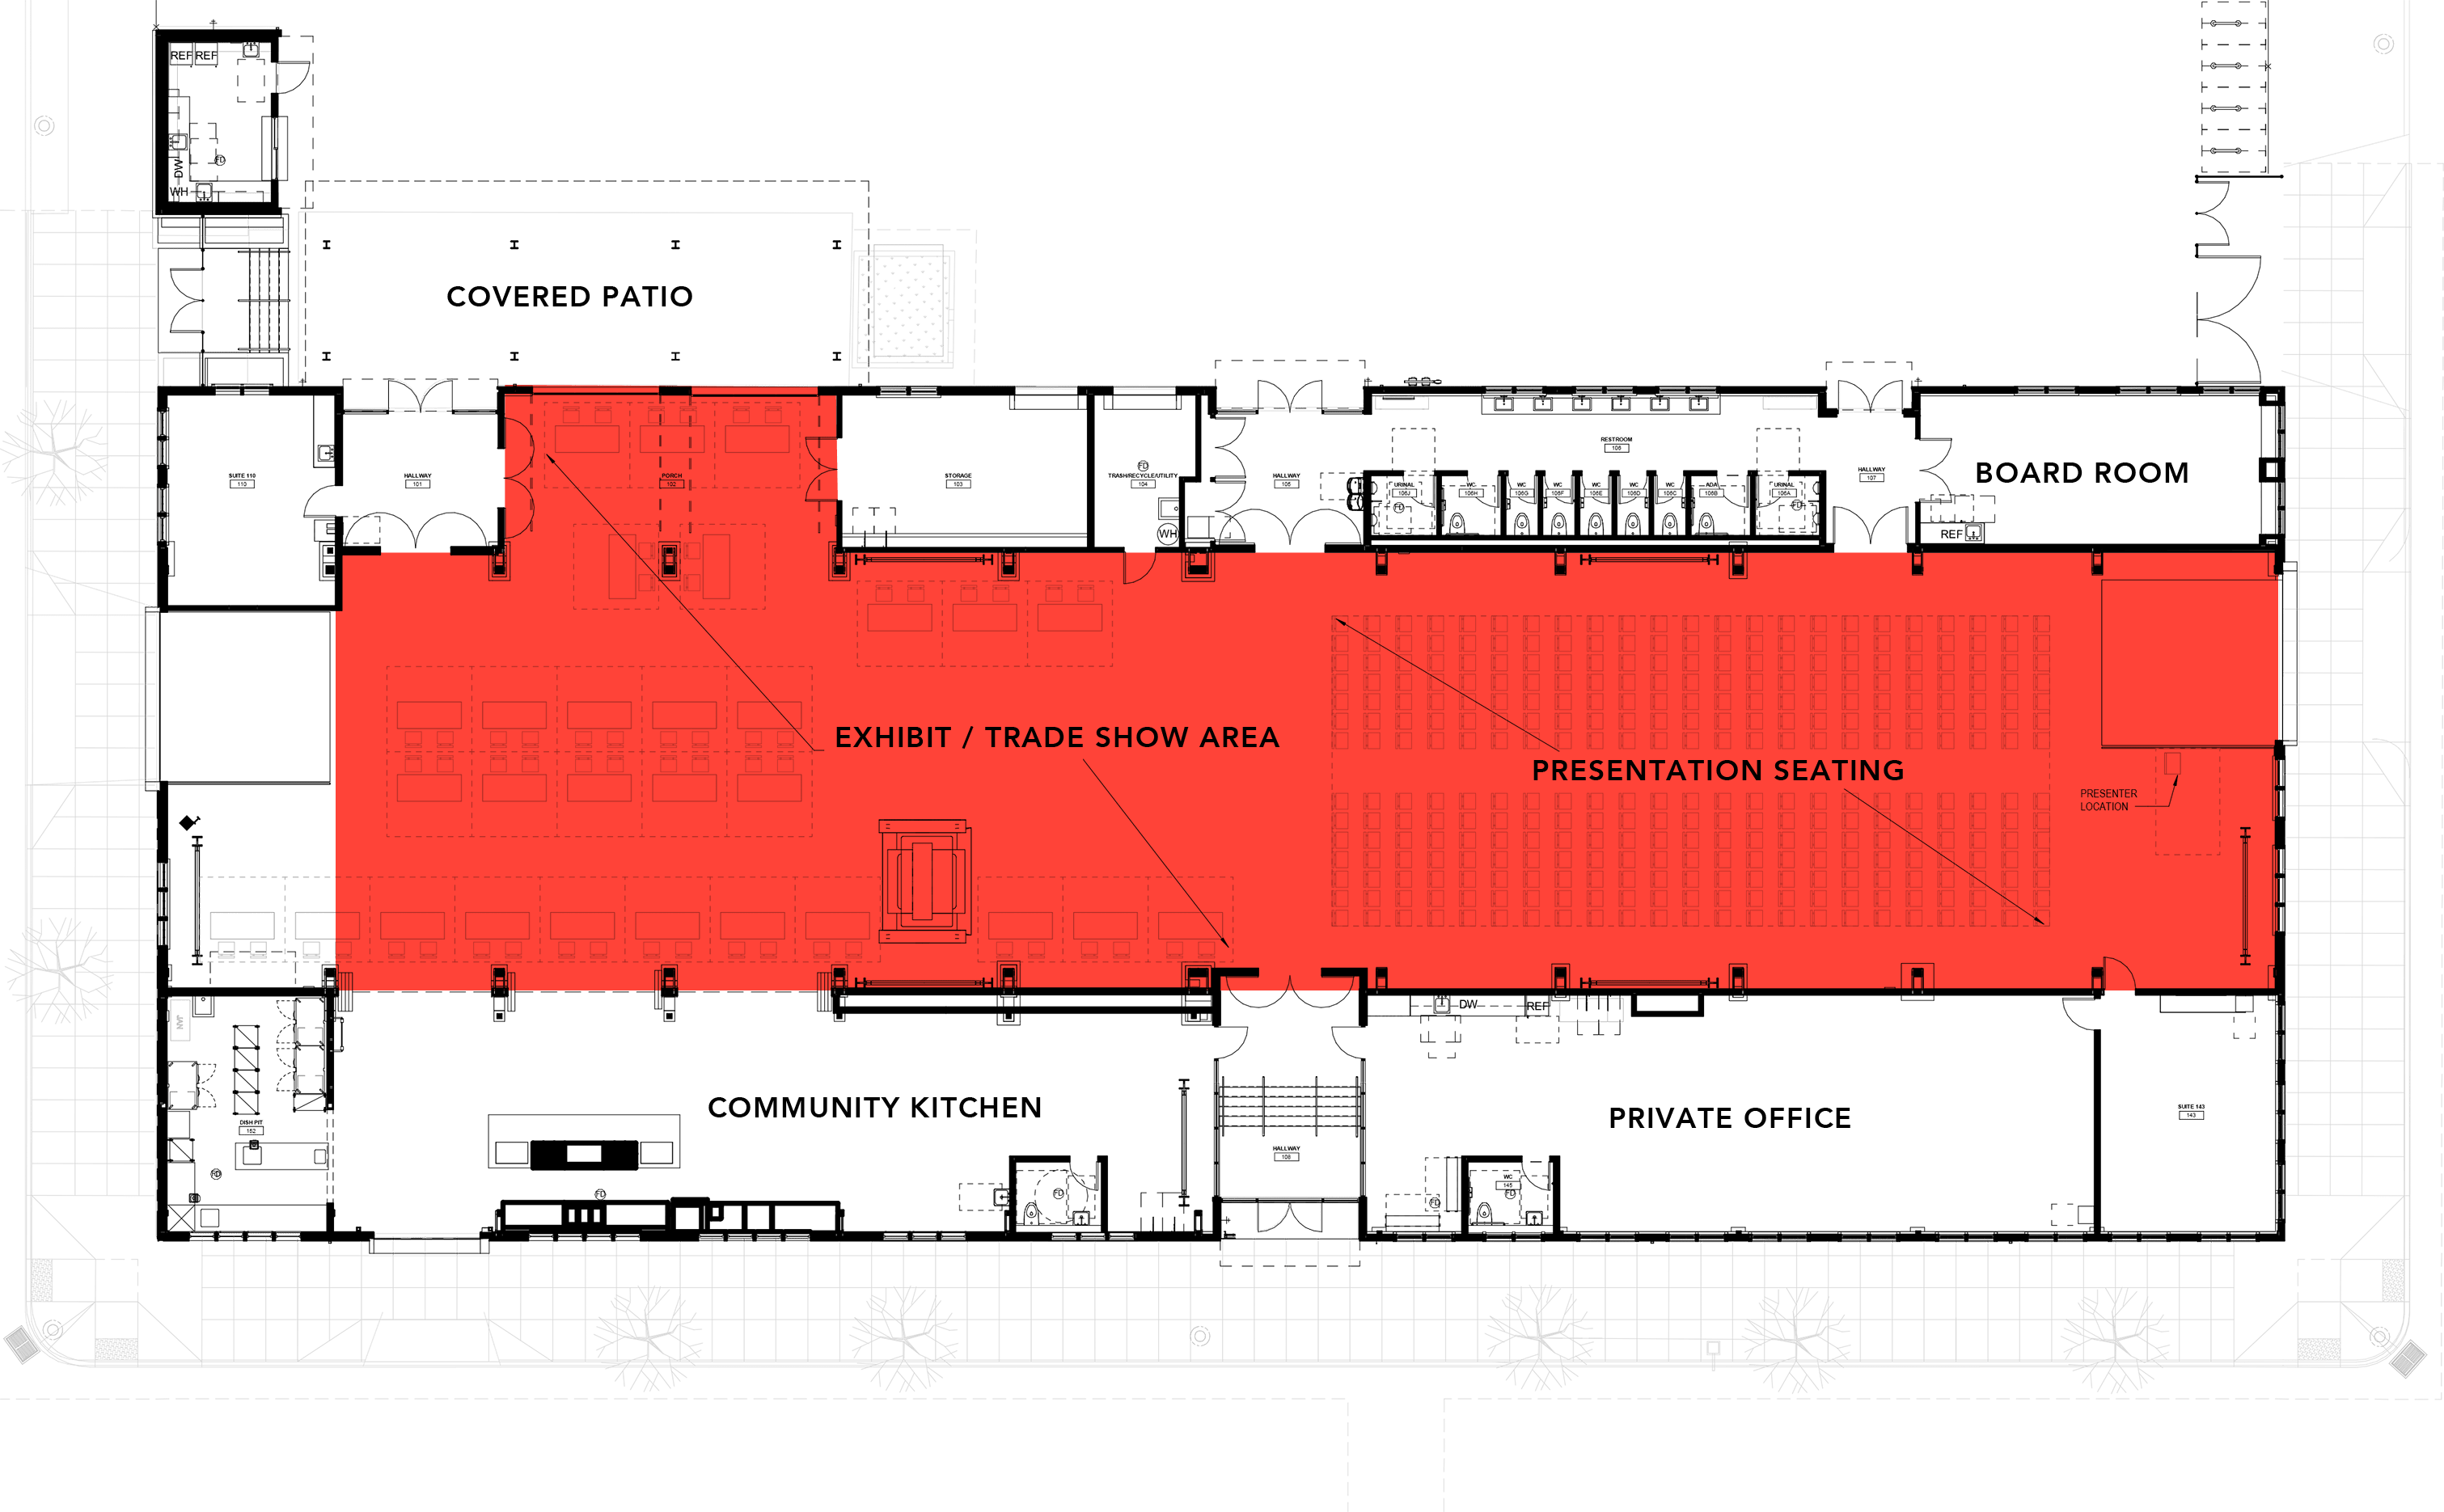 REDD-EAST_Exhibit-Plan_20171121